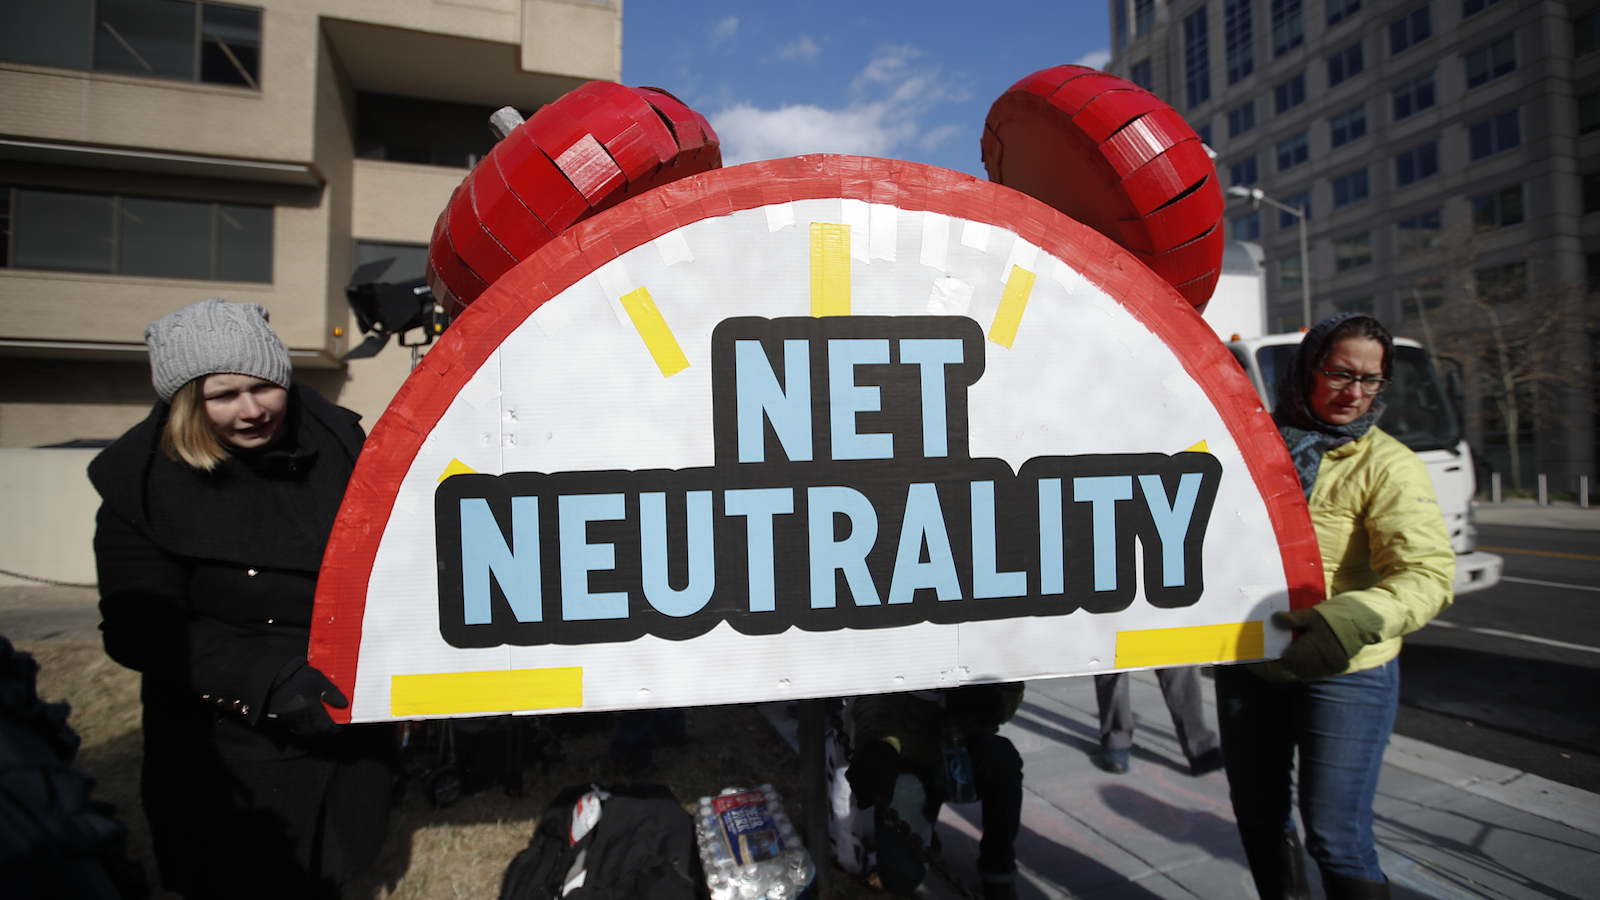 United States officially repeals net neutrality rules